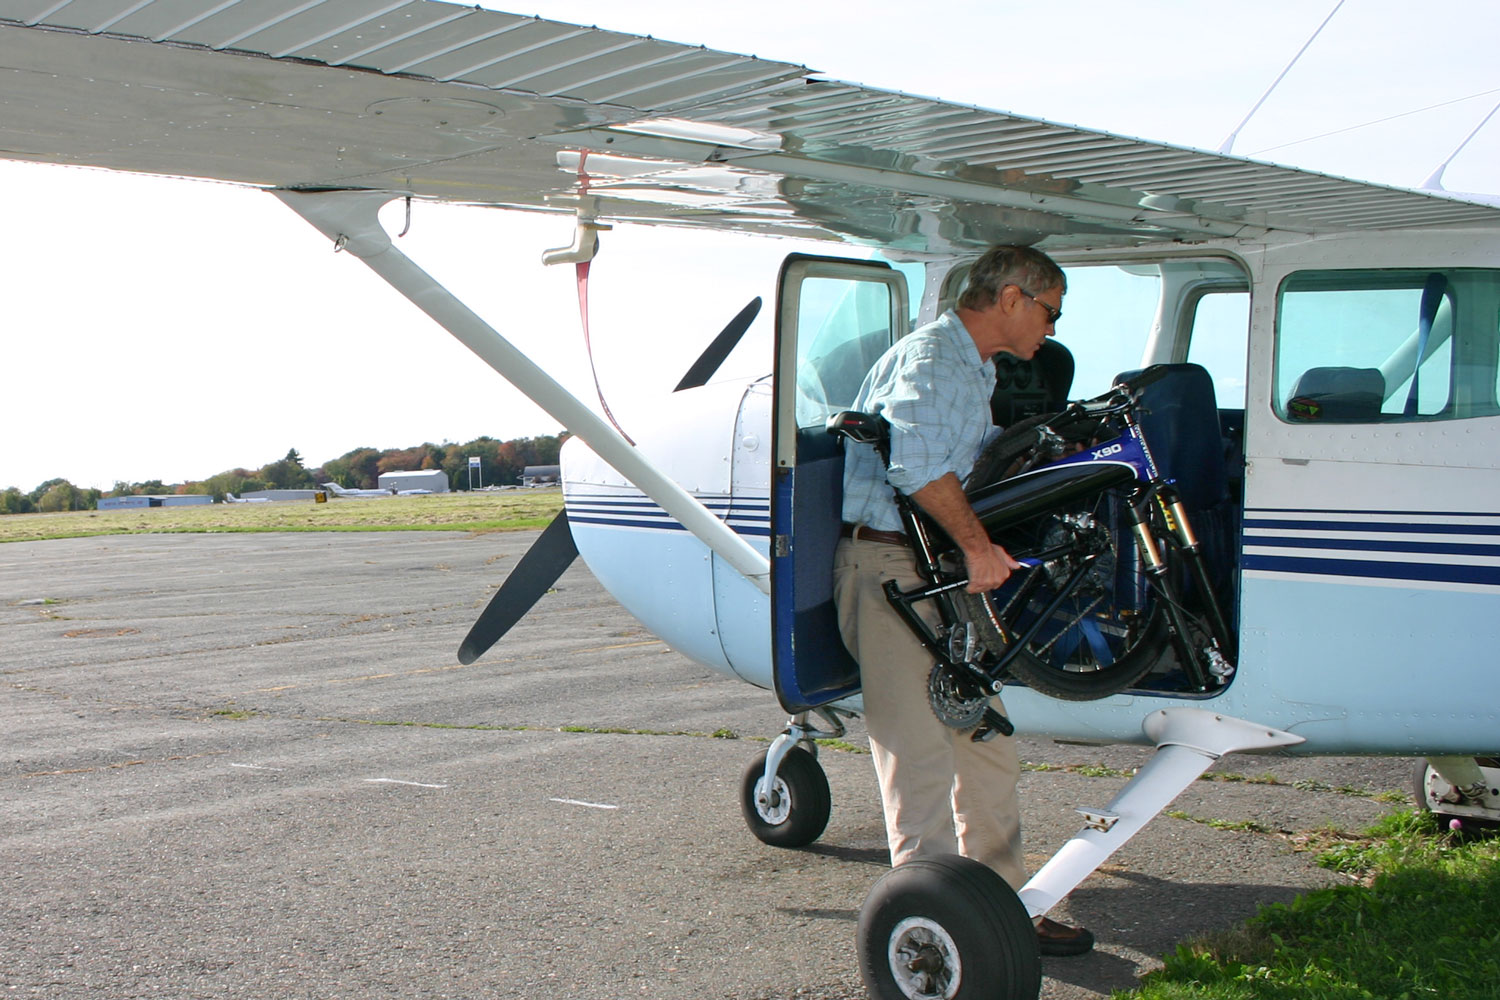 X90 Folding Bike Into Private Plane